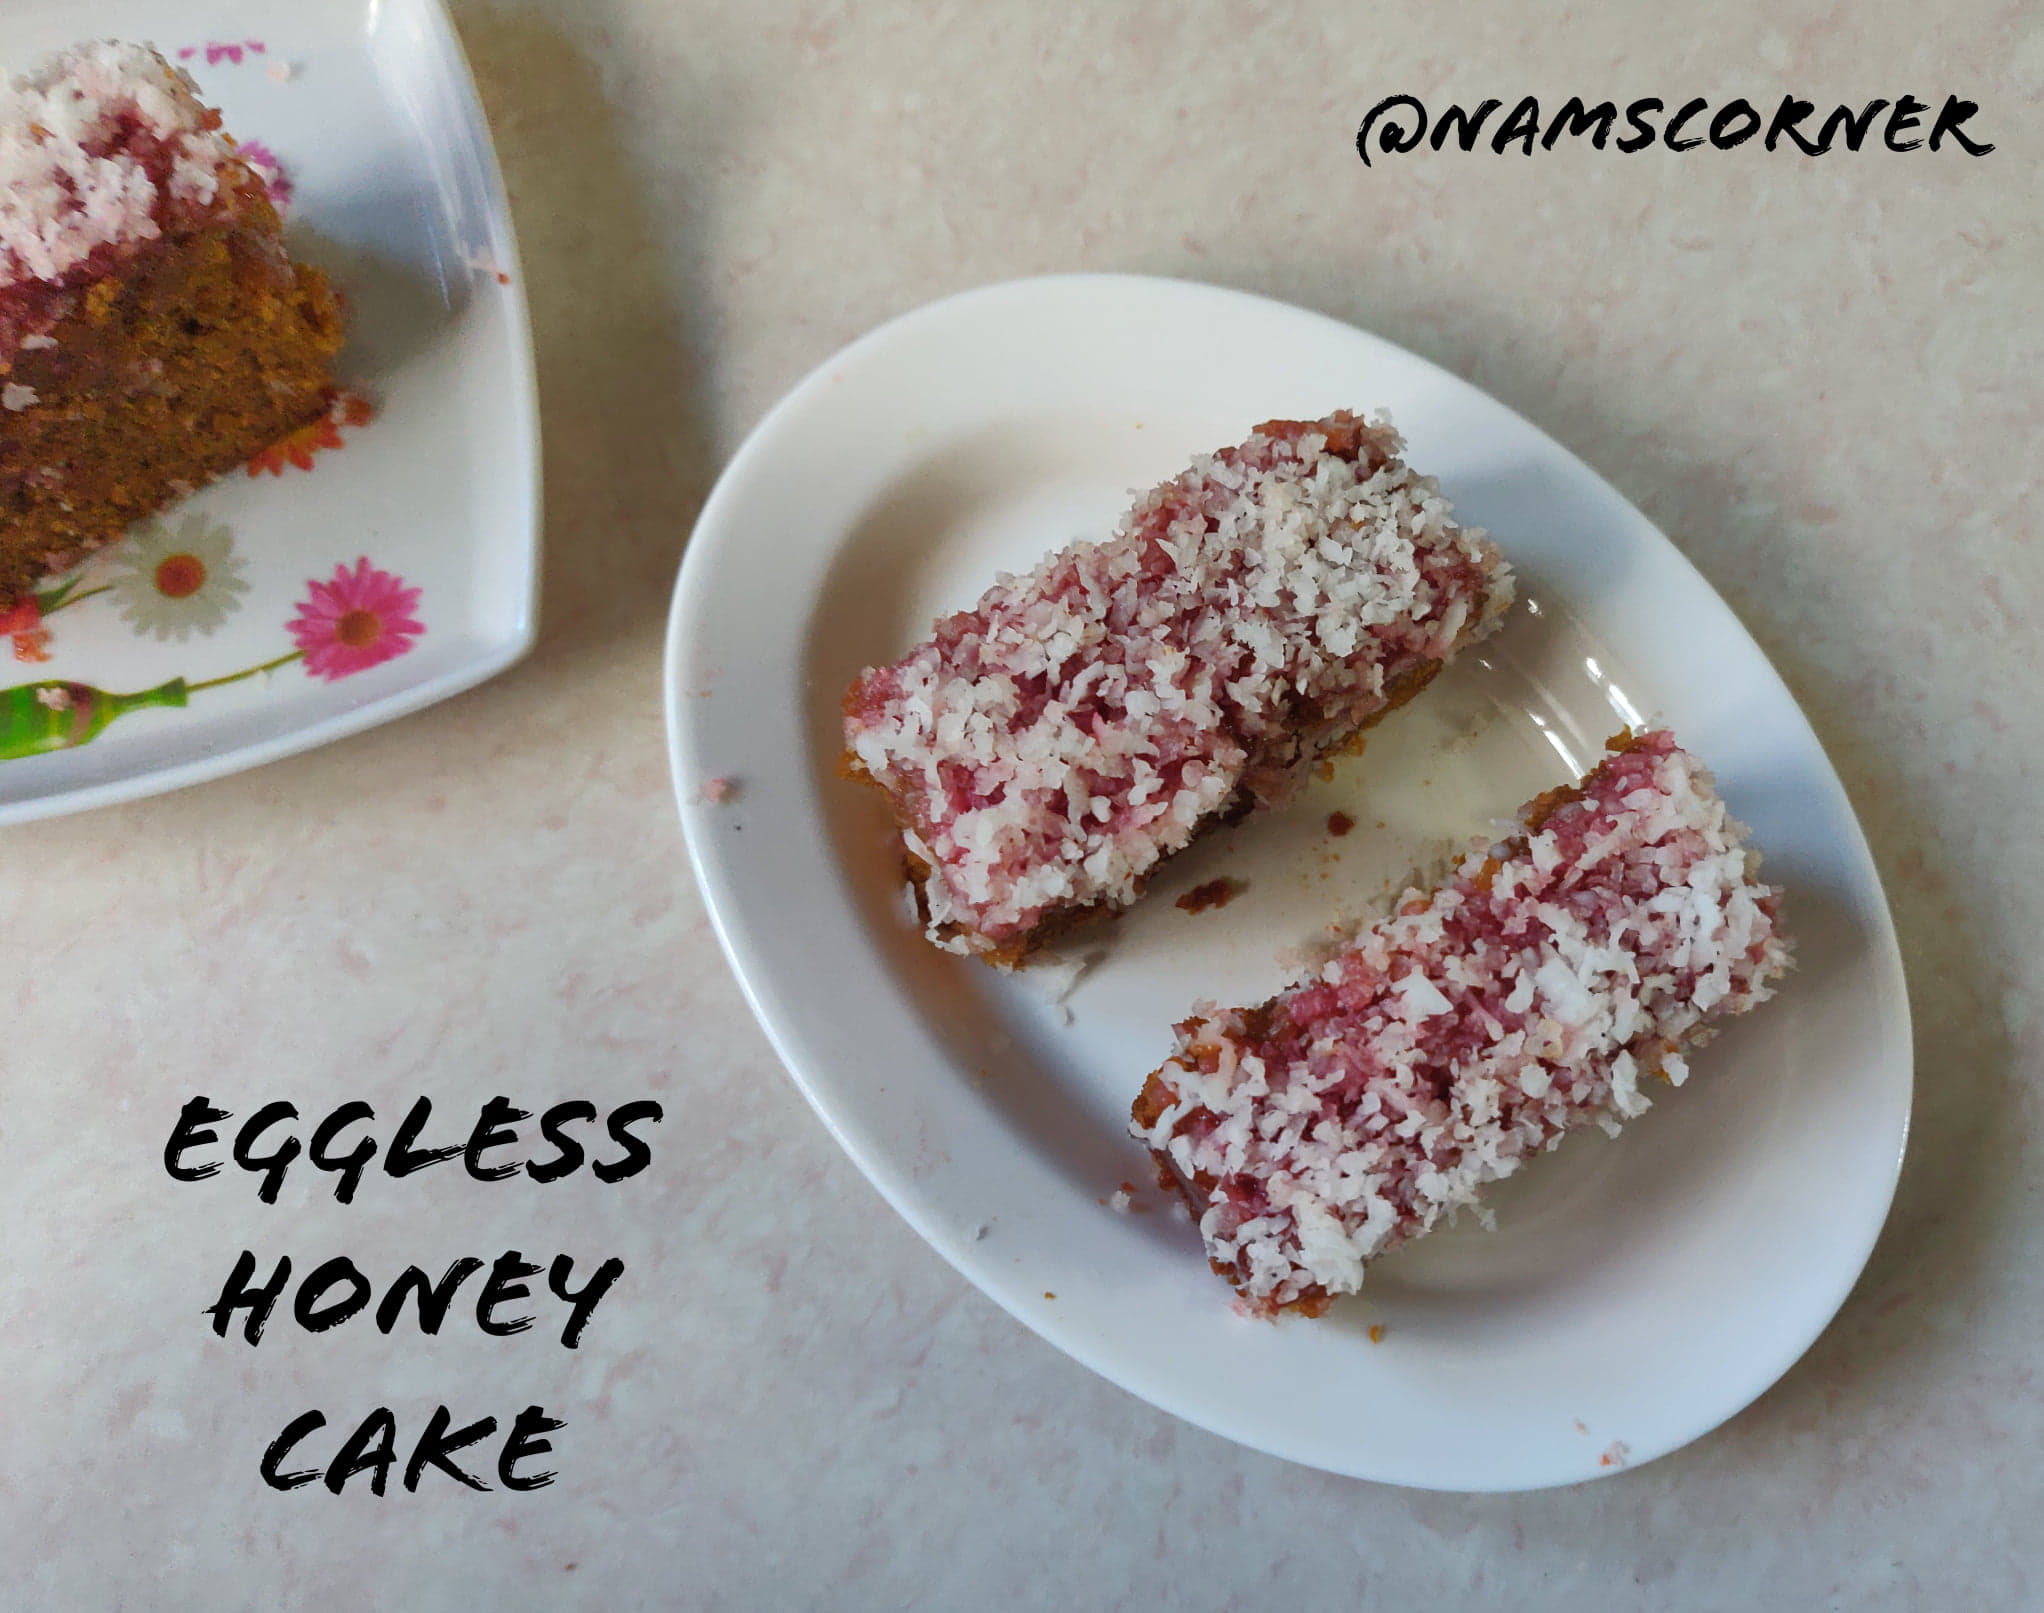 eggless_honey_cake - 107912466_1216754468675951_3444928288114002418_n